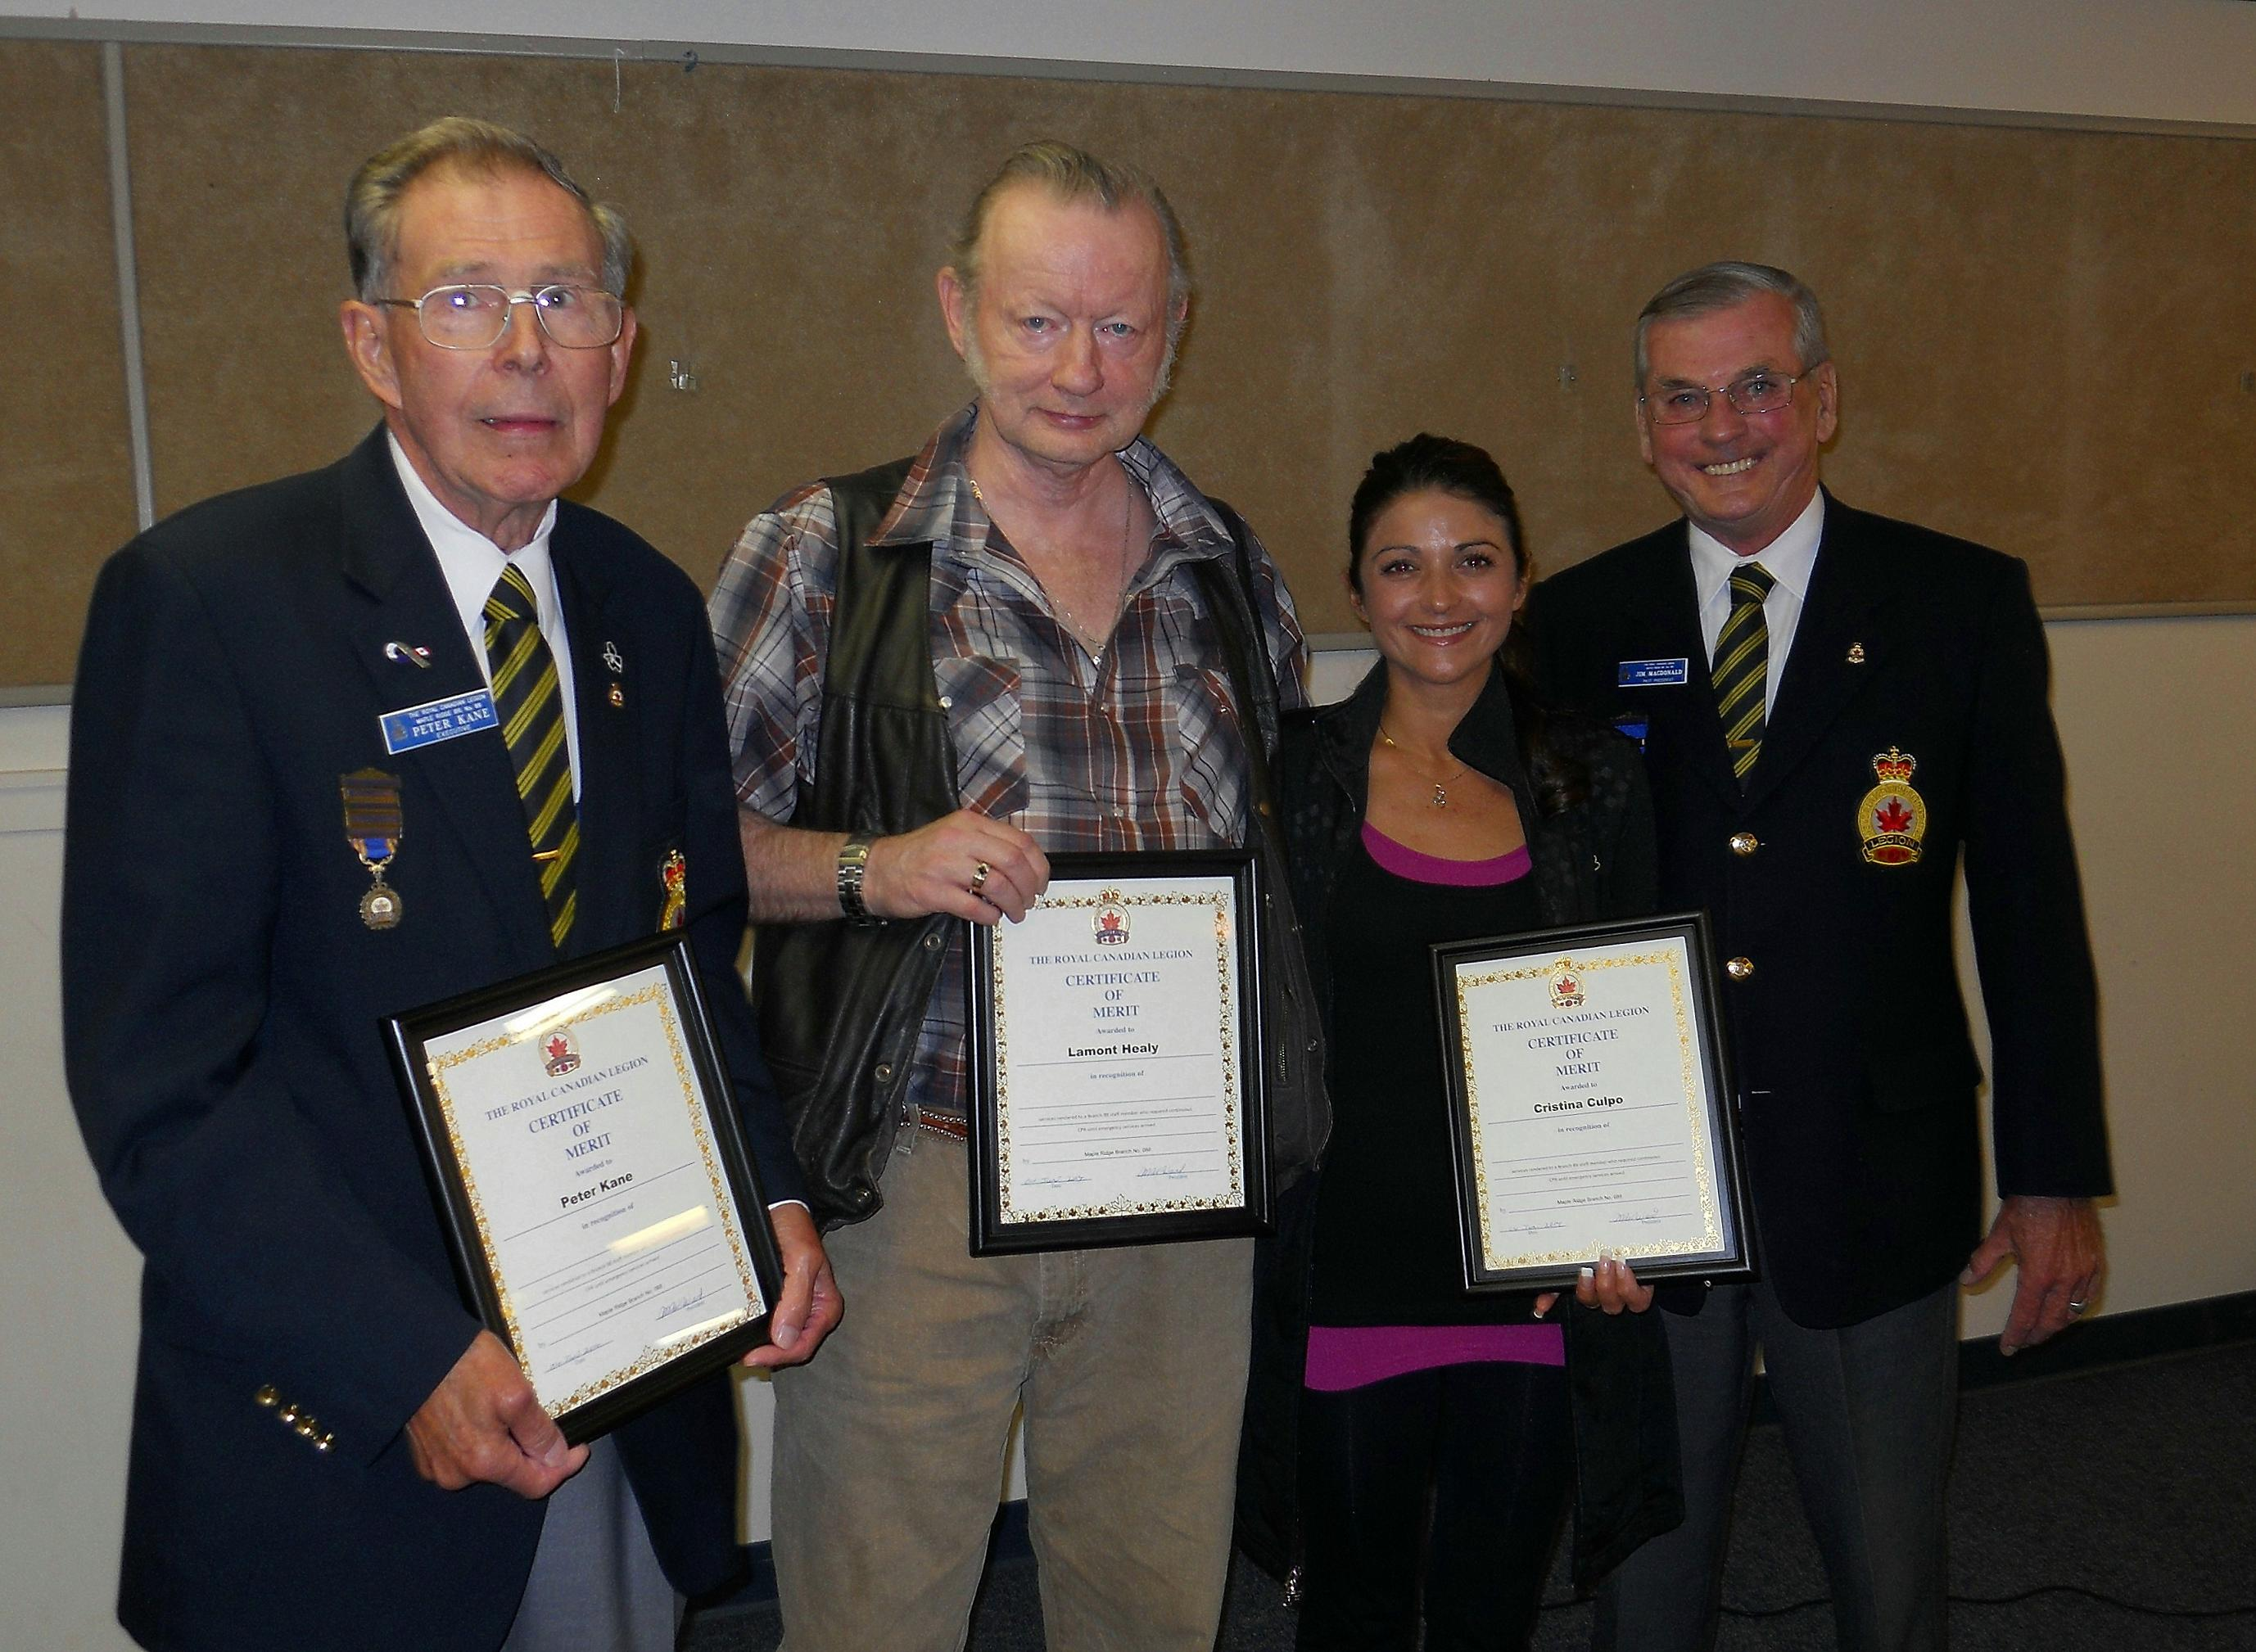 Peter Kane, Lamont Healy and Cristina Culpo each received the Royal Canadian Legion Certificate of Merit from Past President Jim MacDonald. This honours their outstanding efforts in providing continuous life-saving CPR to a staff member until Emergency Services arrived. Not shown in the photo is the fourth recipient, Phillis Douglas.